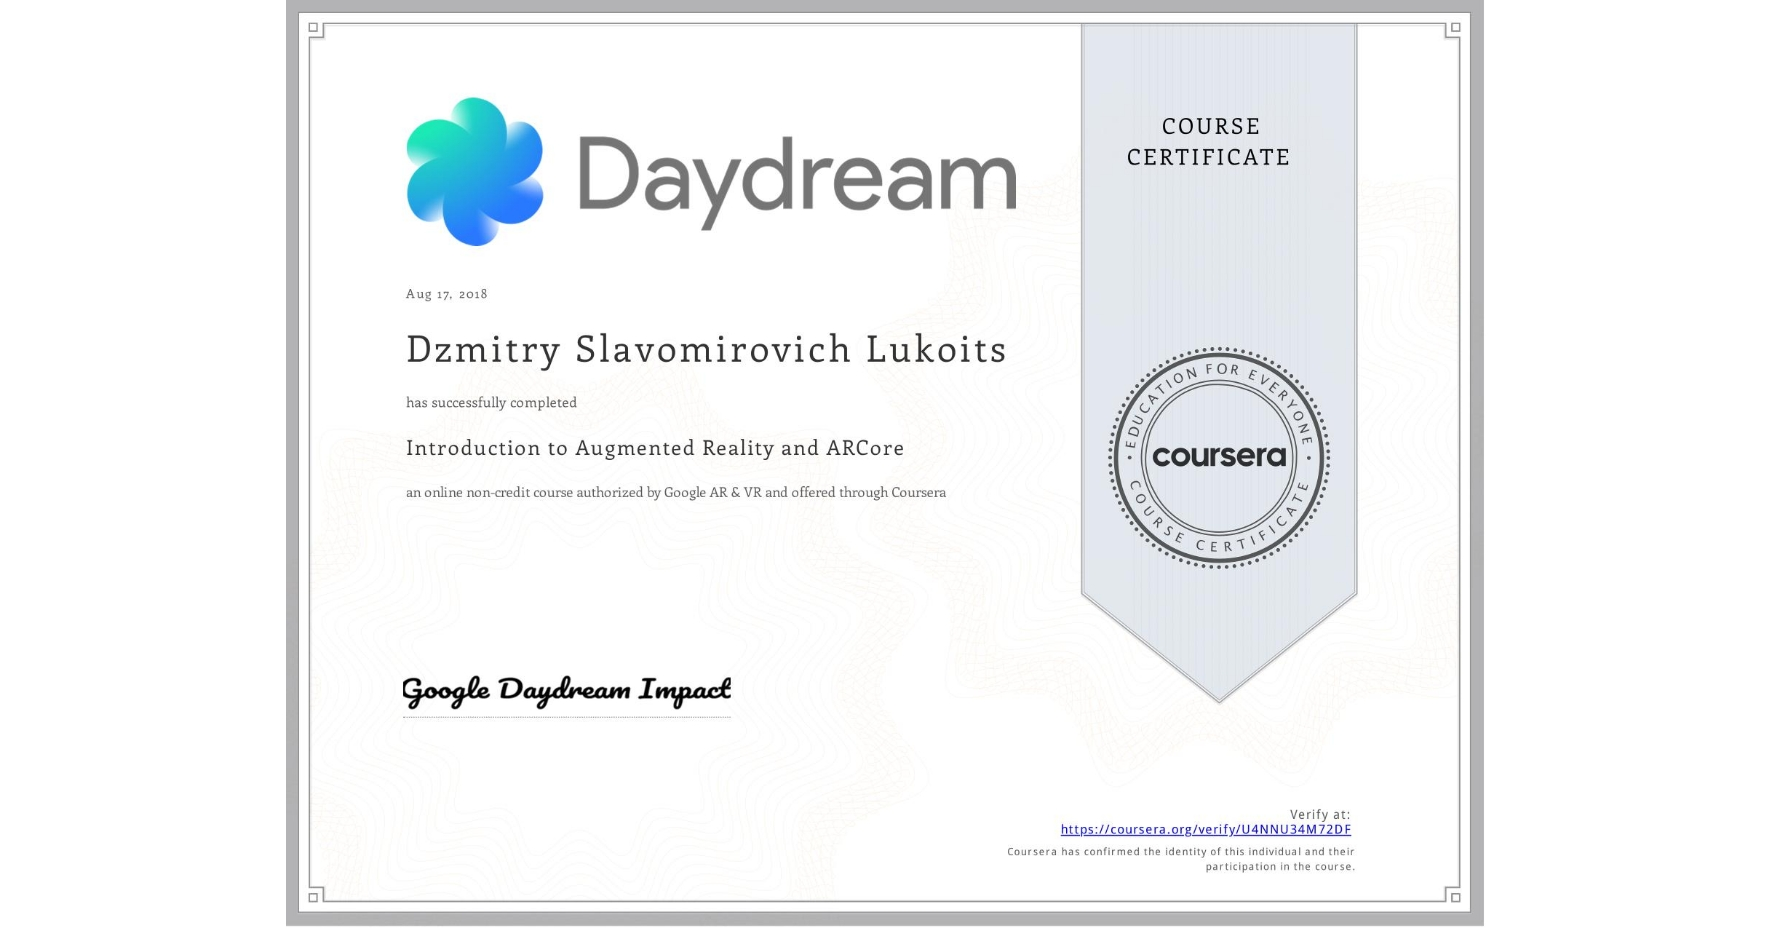 View certificate for Dzmitry Slavomirovich Lukoits, Introduction to Augmented Reality and ARCore, an online non-credit course authorized by Google AR & VR and offered through Coursera